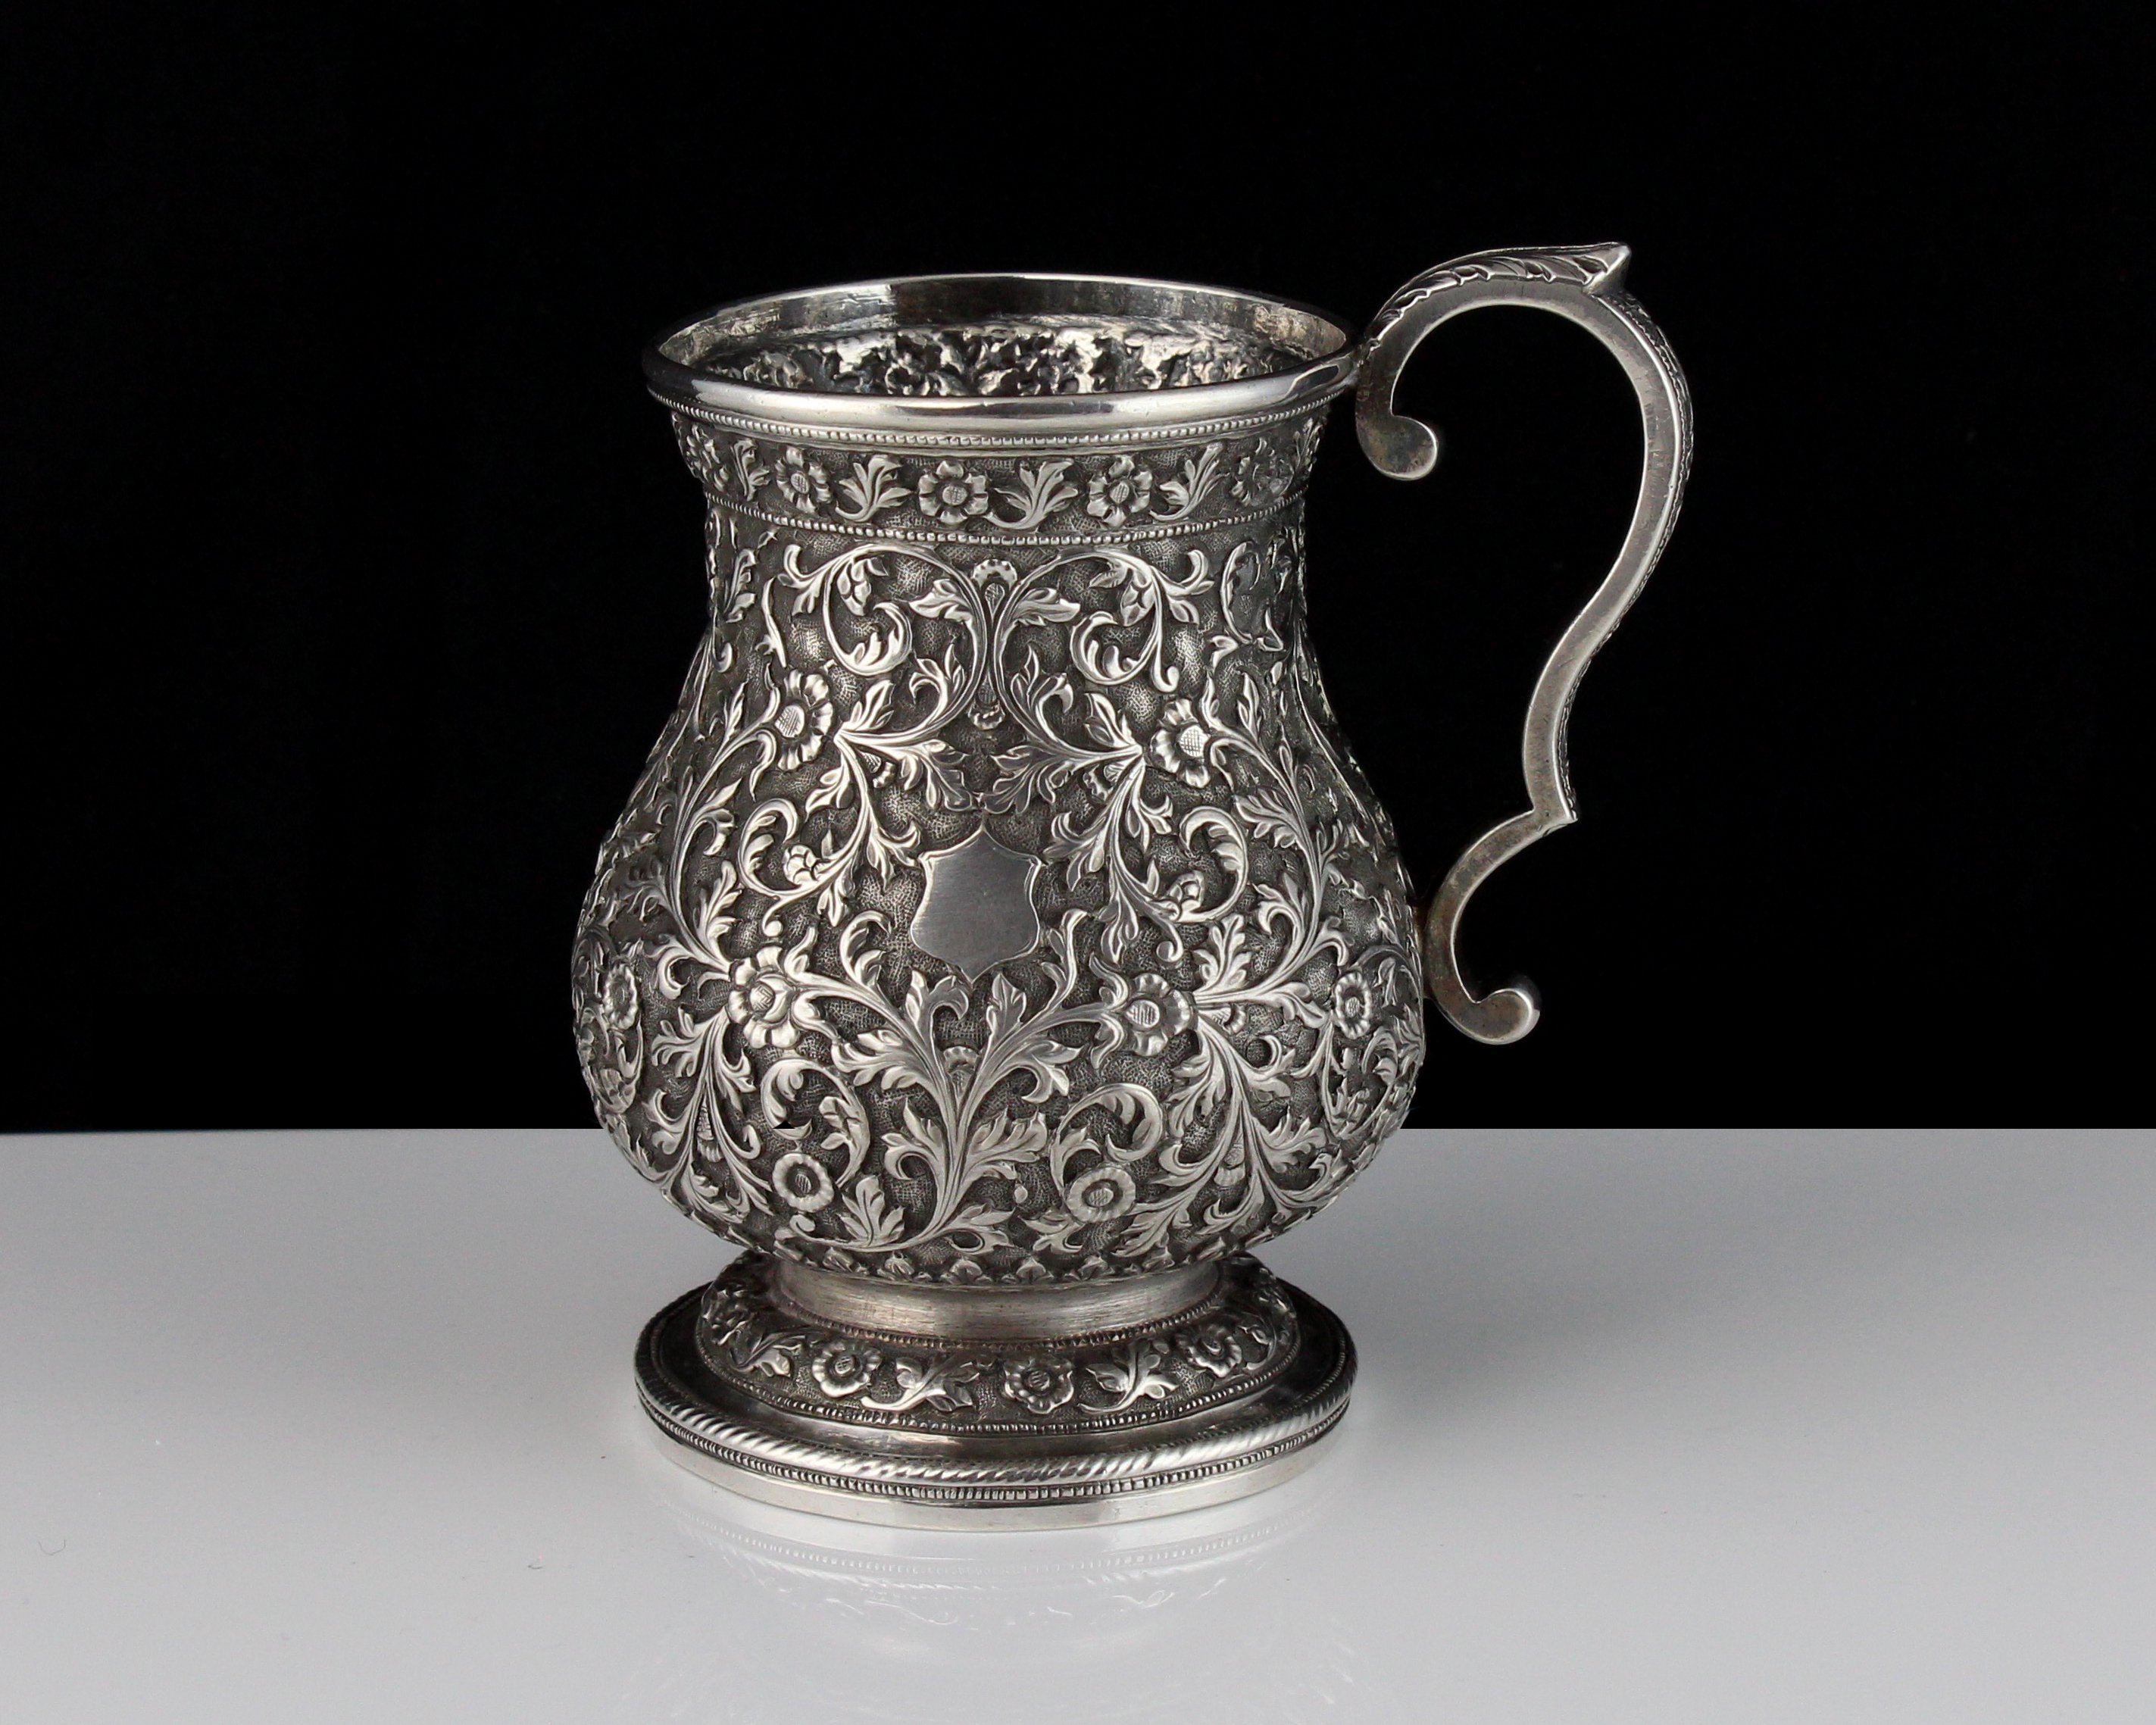 An antique Indian Silver cup / mug Kutch circa 1890 of baluster form on a spreading foot with